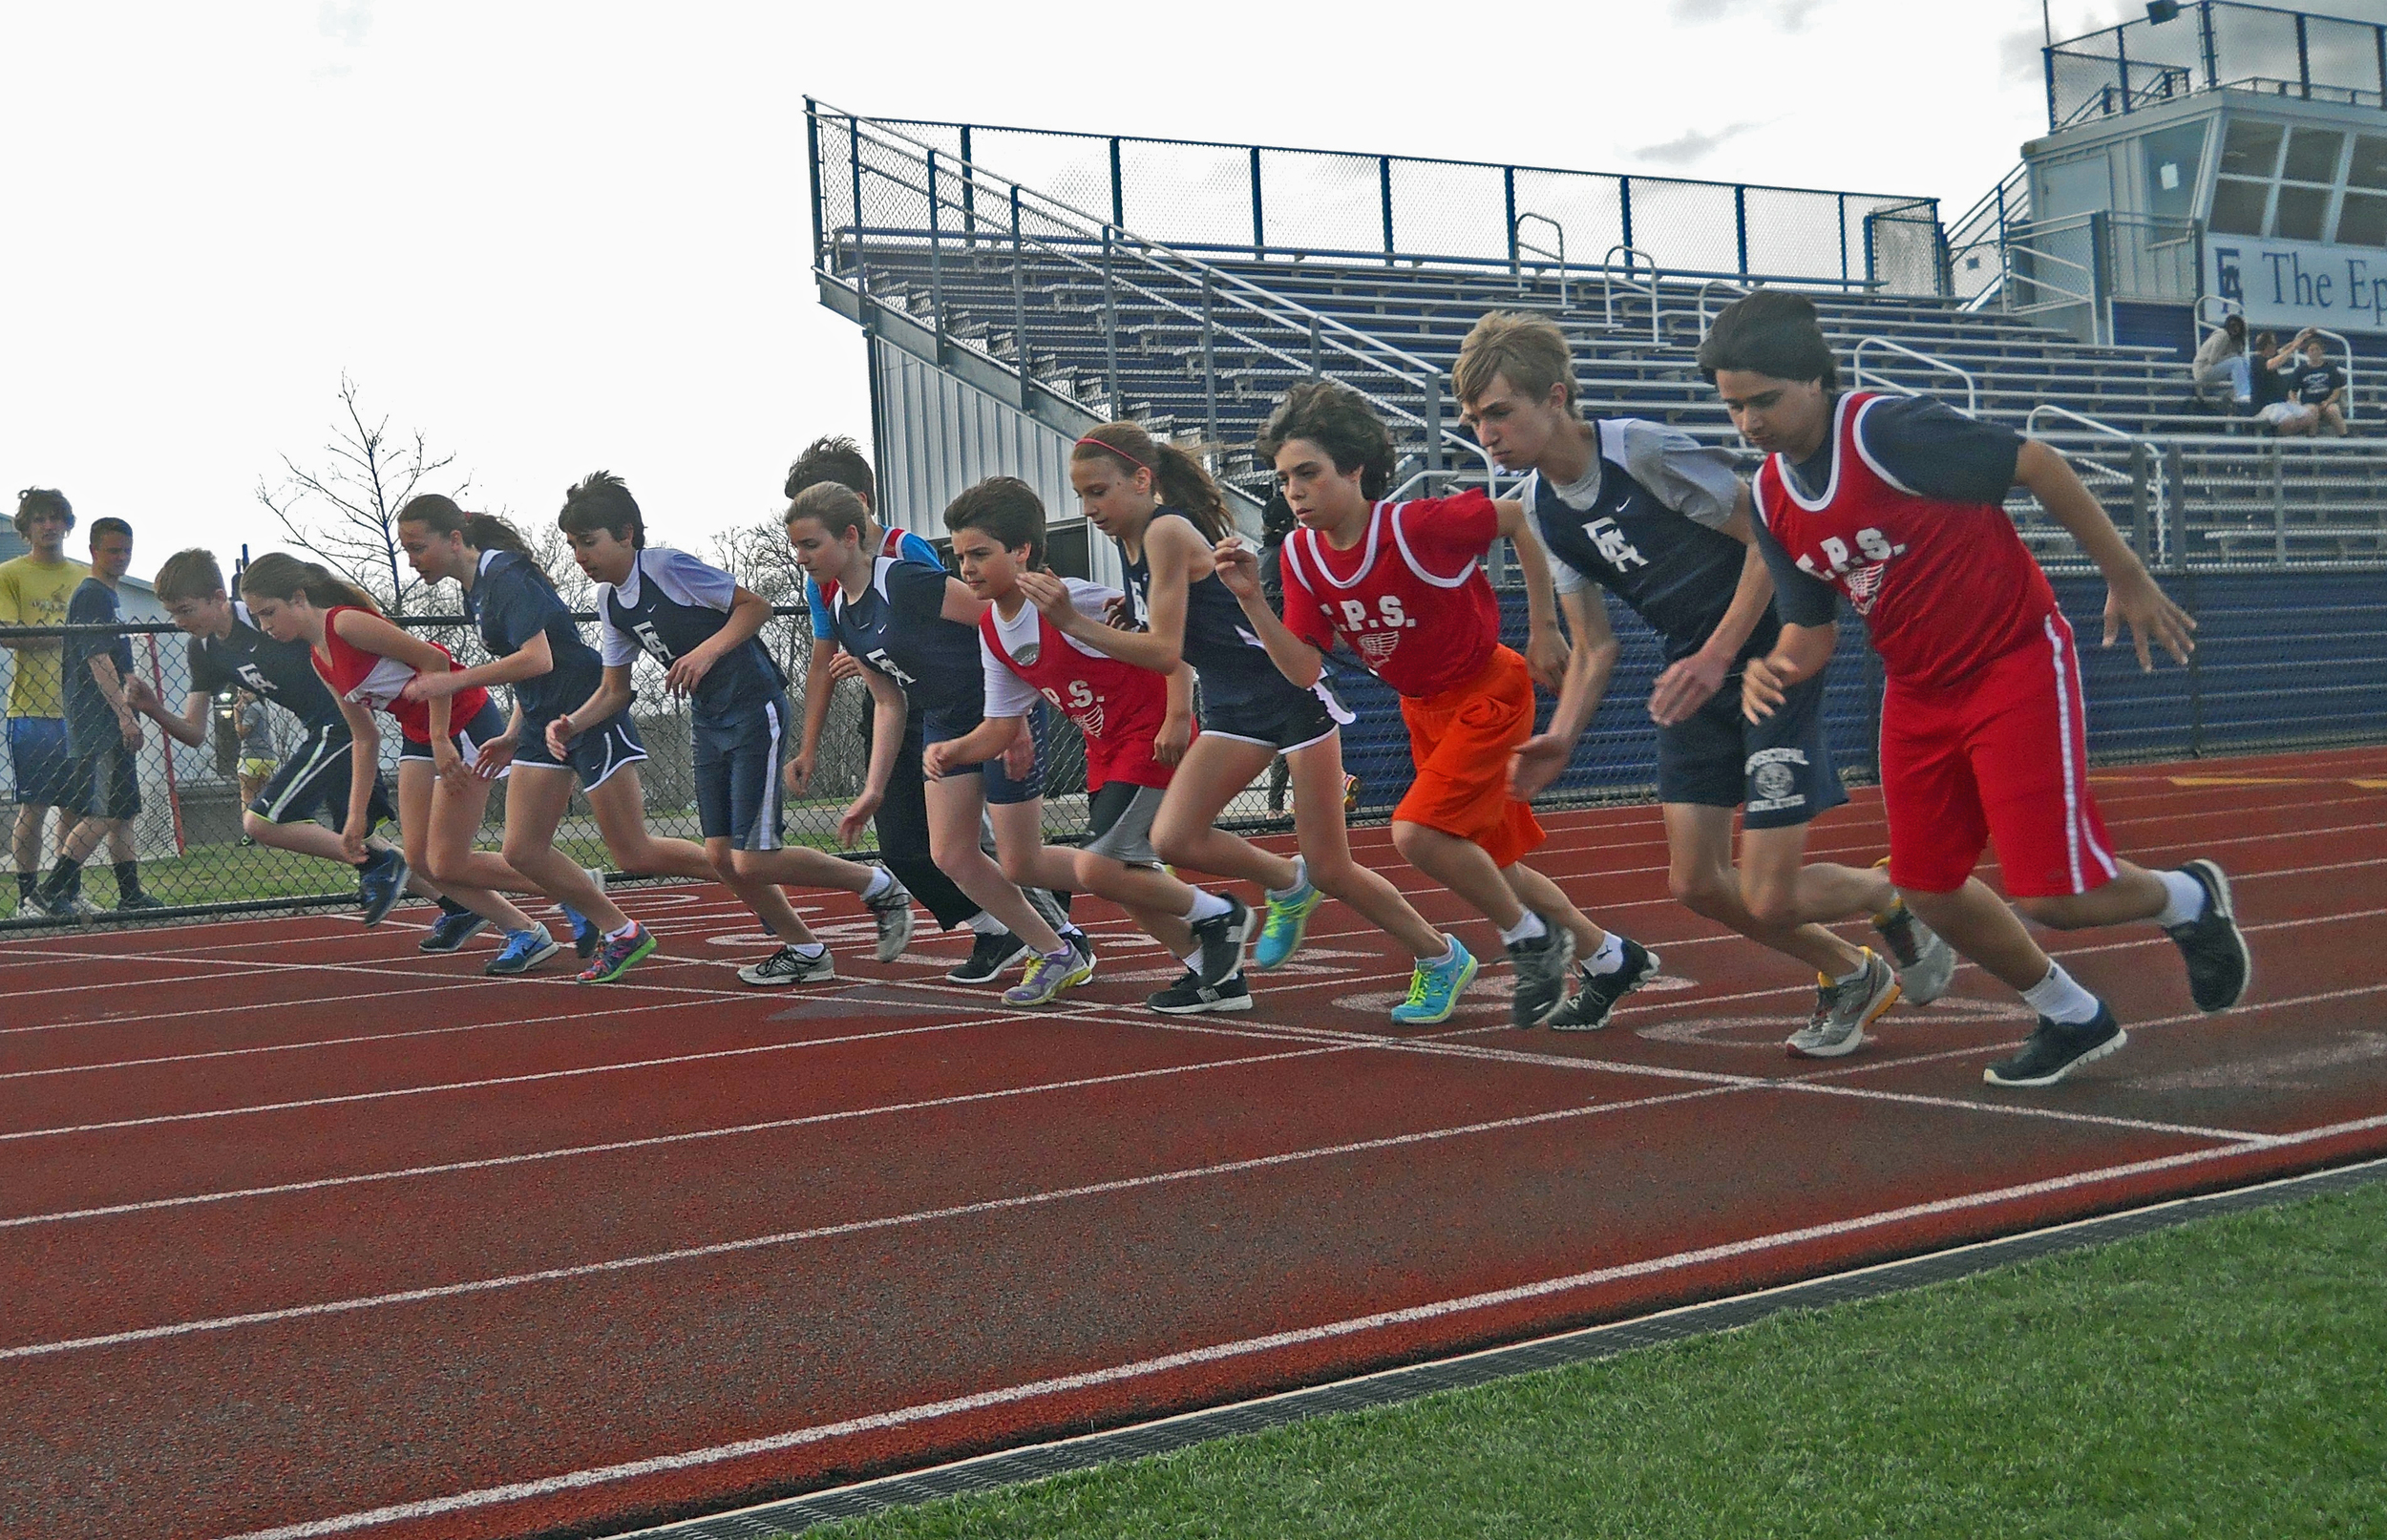 TPS track stars– in red, of course – beginning the 800-meter race at Episcopal Academy.